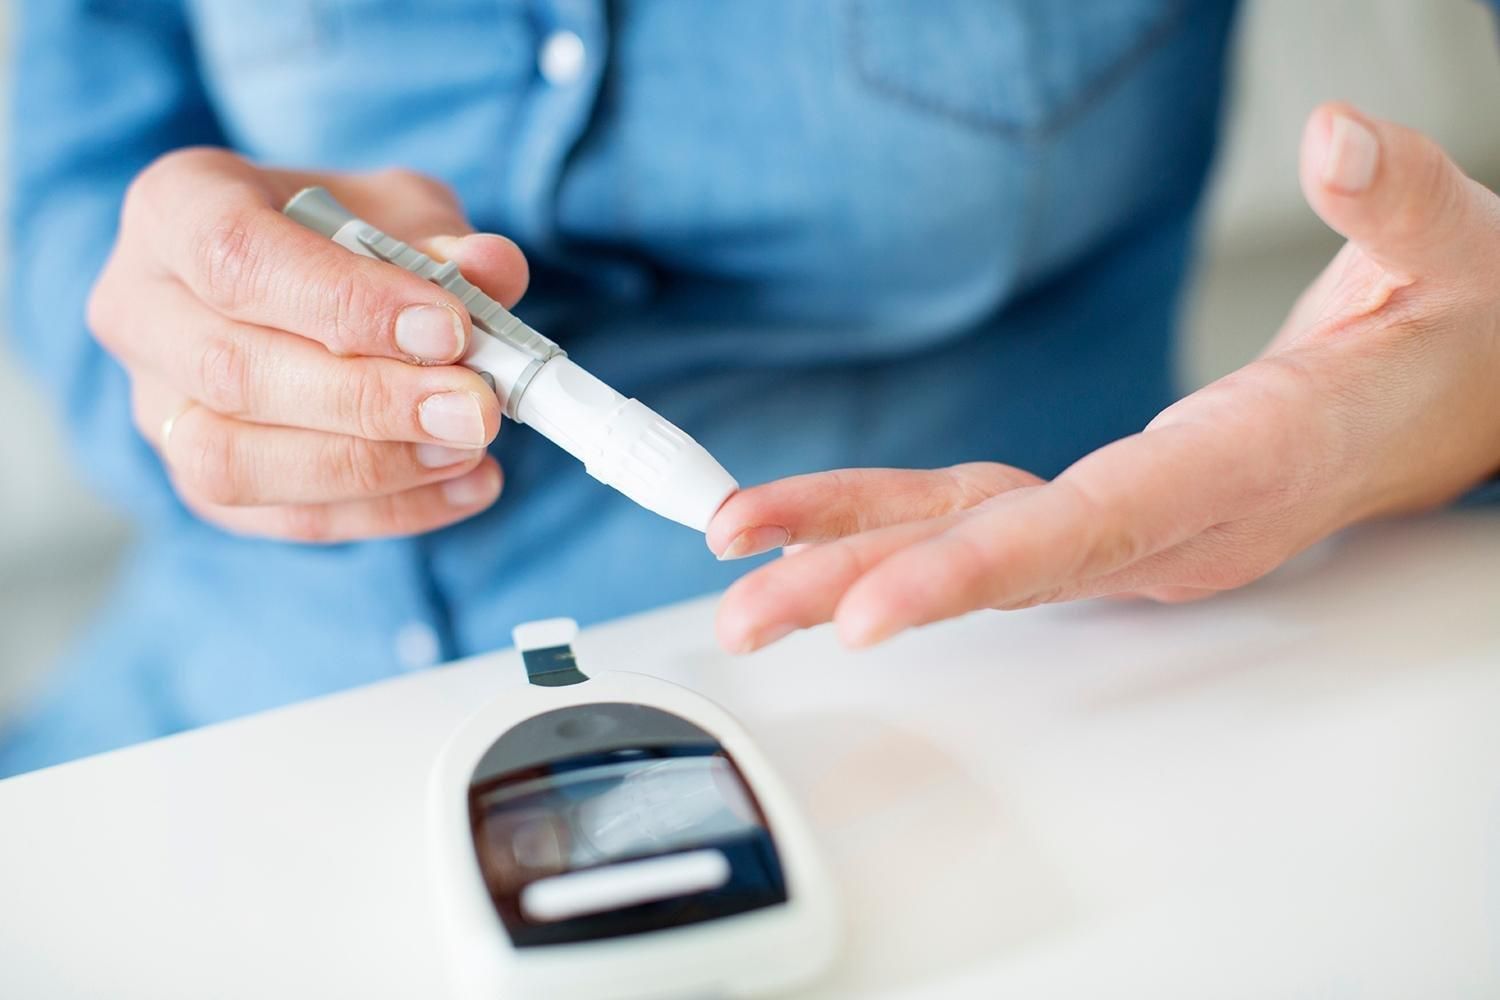 Australian Research Looks At Alternatives To Blood Glucose Testing